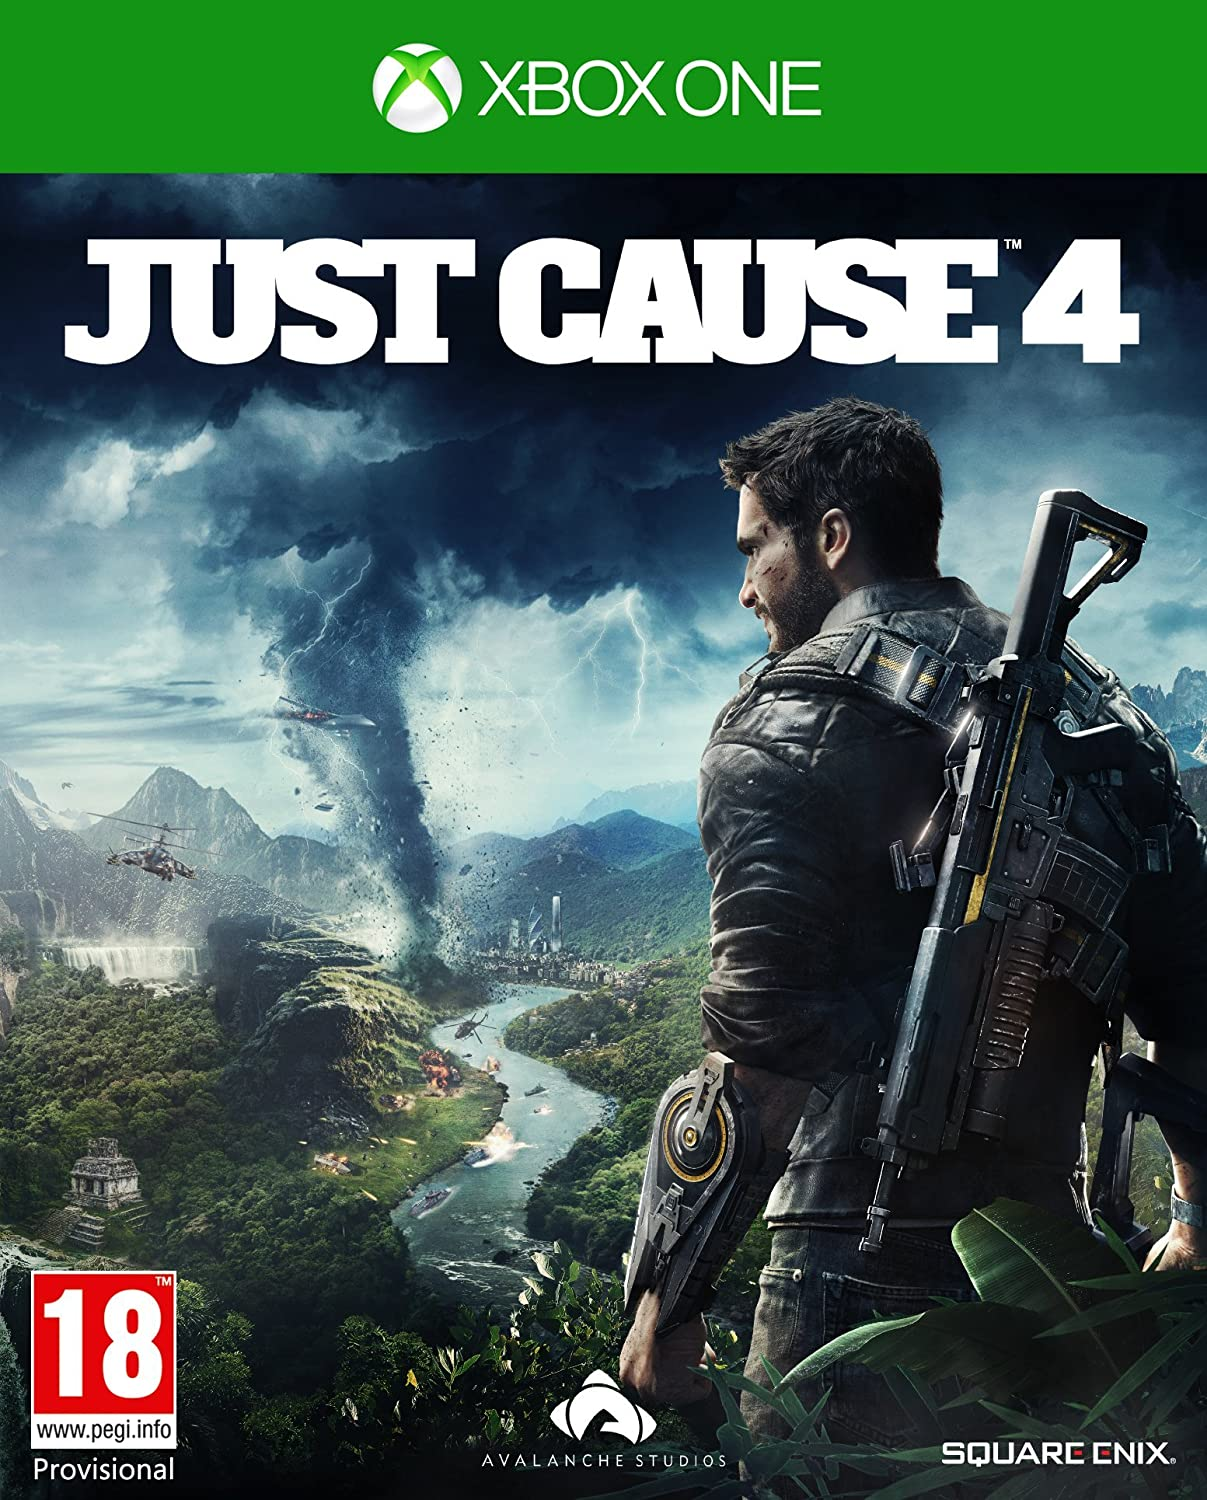 Xbox One Just Cause 4 Steelbook No Game Tin Only Video Games & Consoles